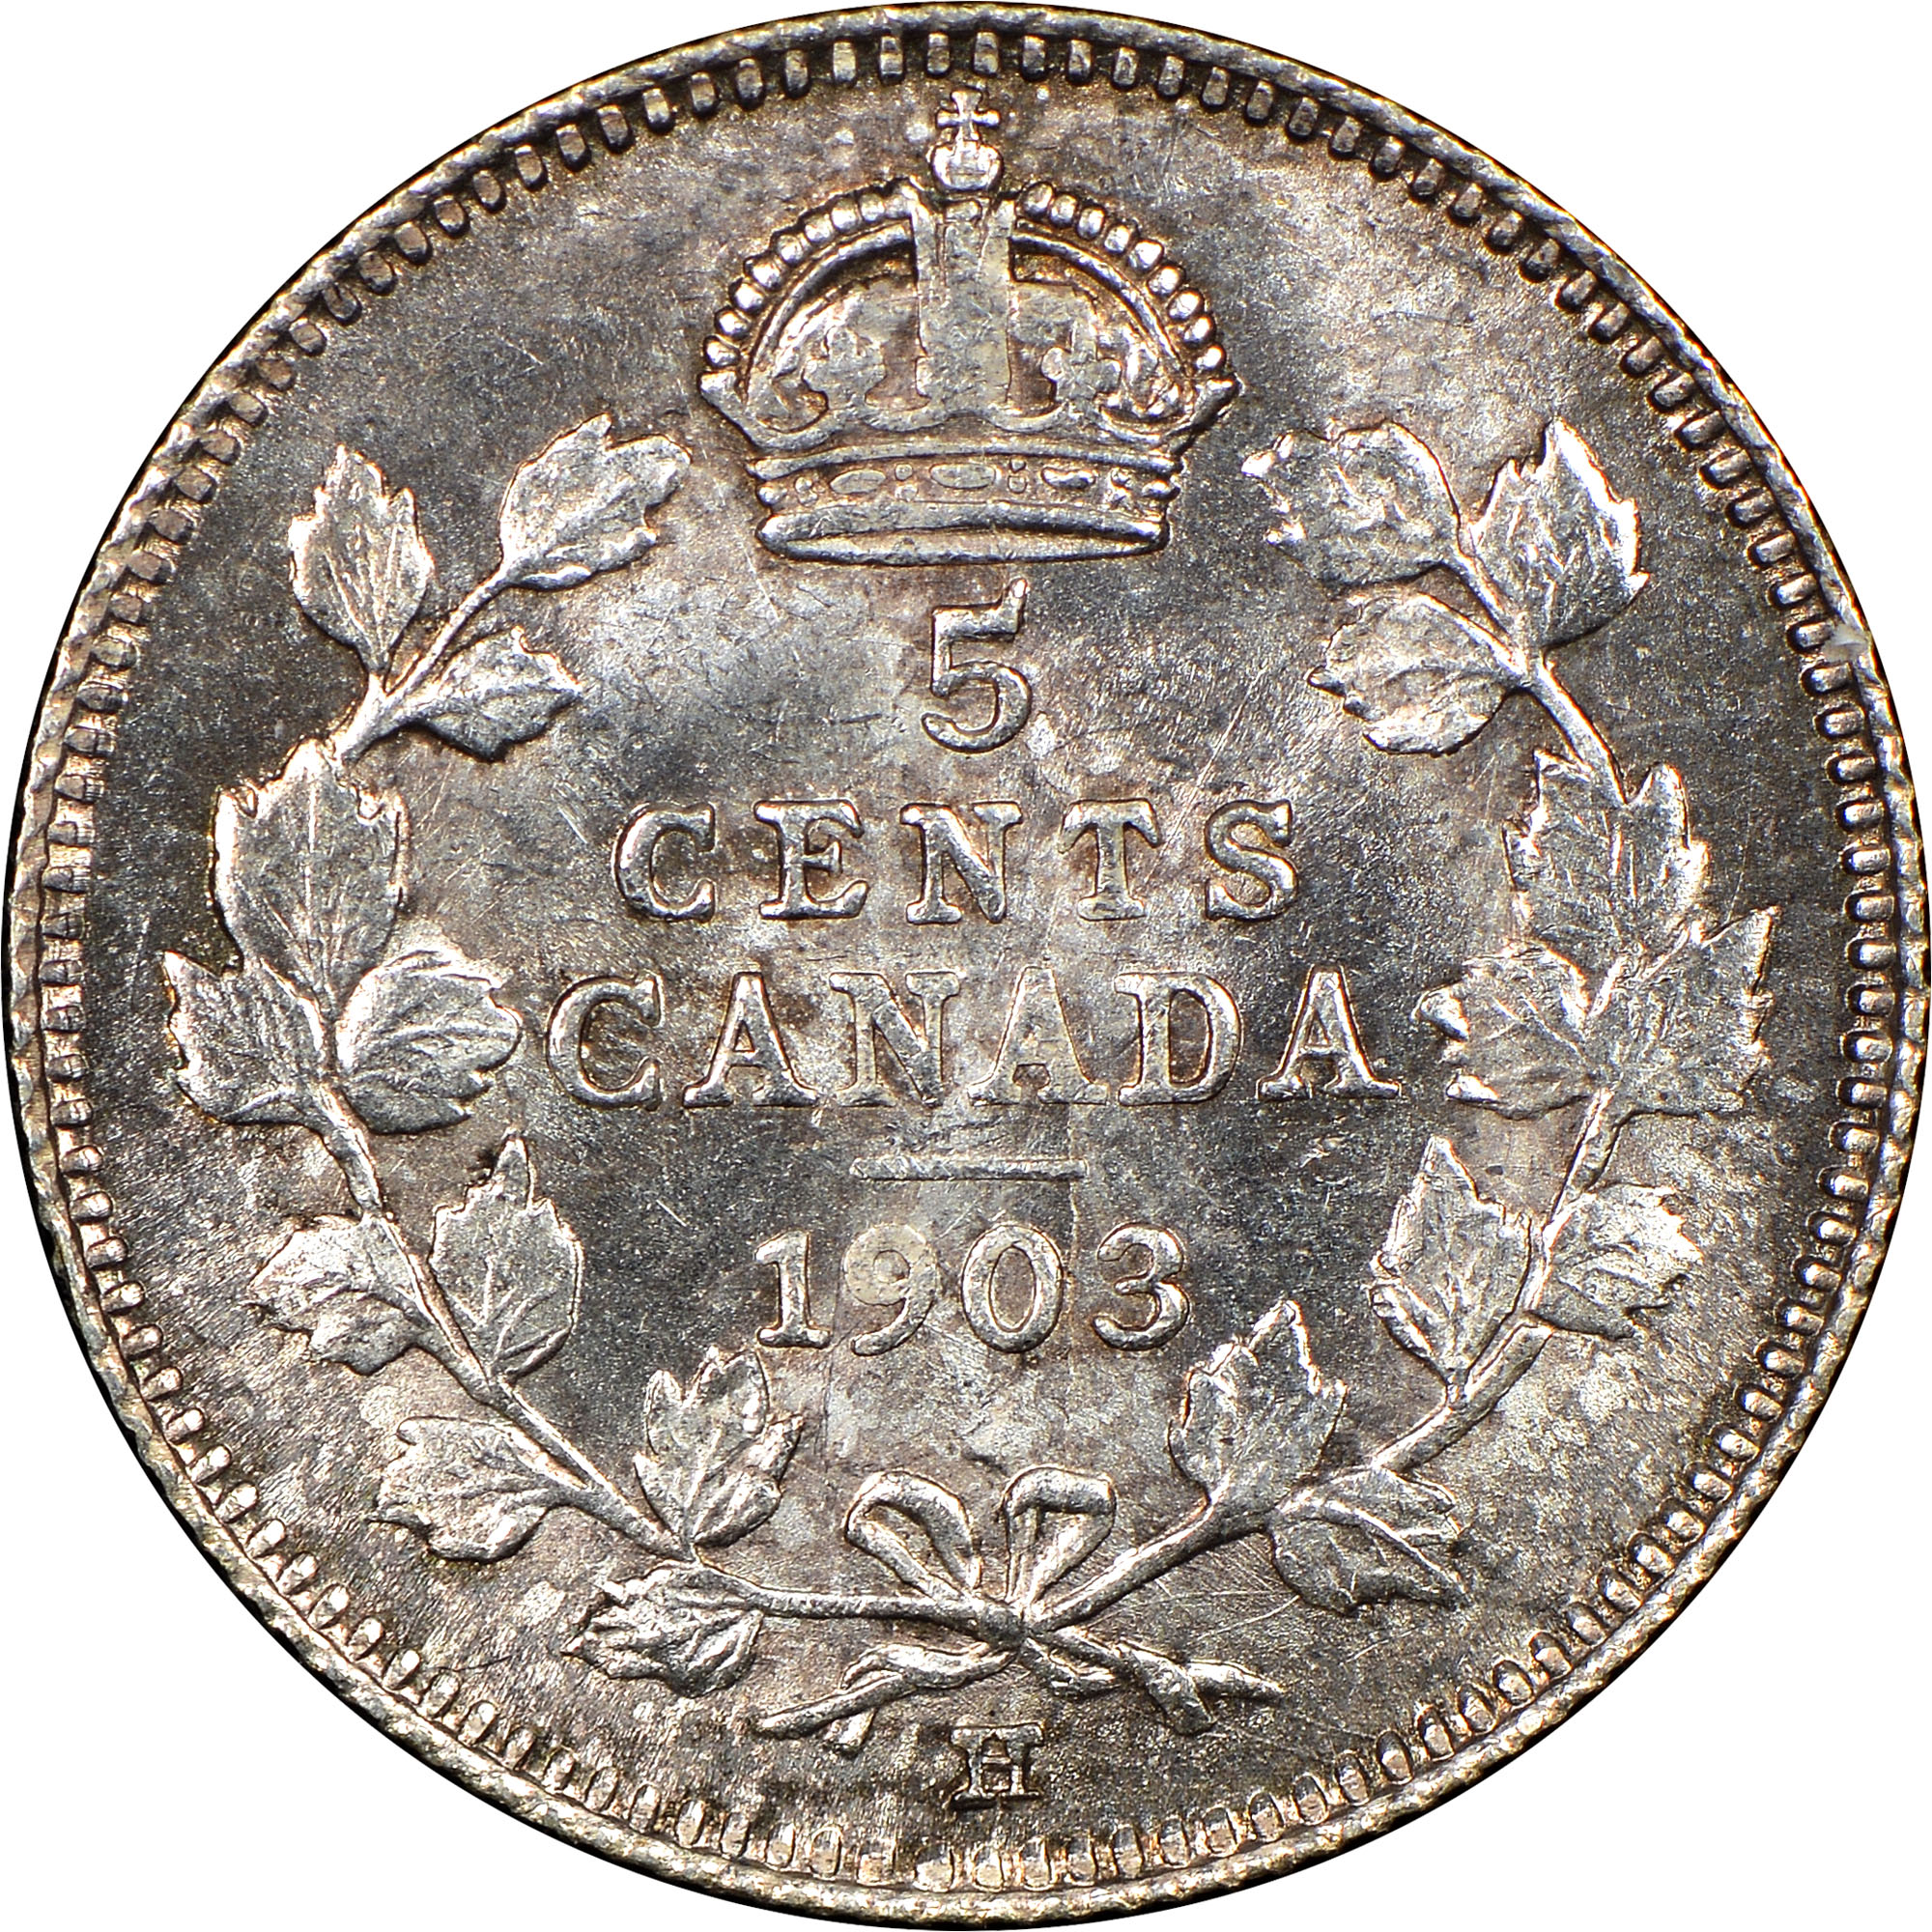 1930 CANADA 5 CENTS COIN GRADE G or Better BUY 1 OR MORE Its free S//H